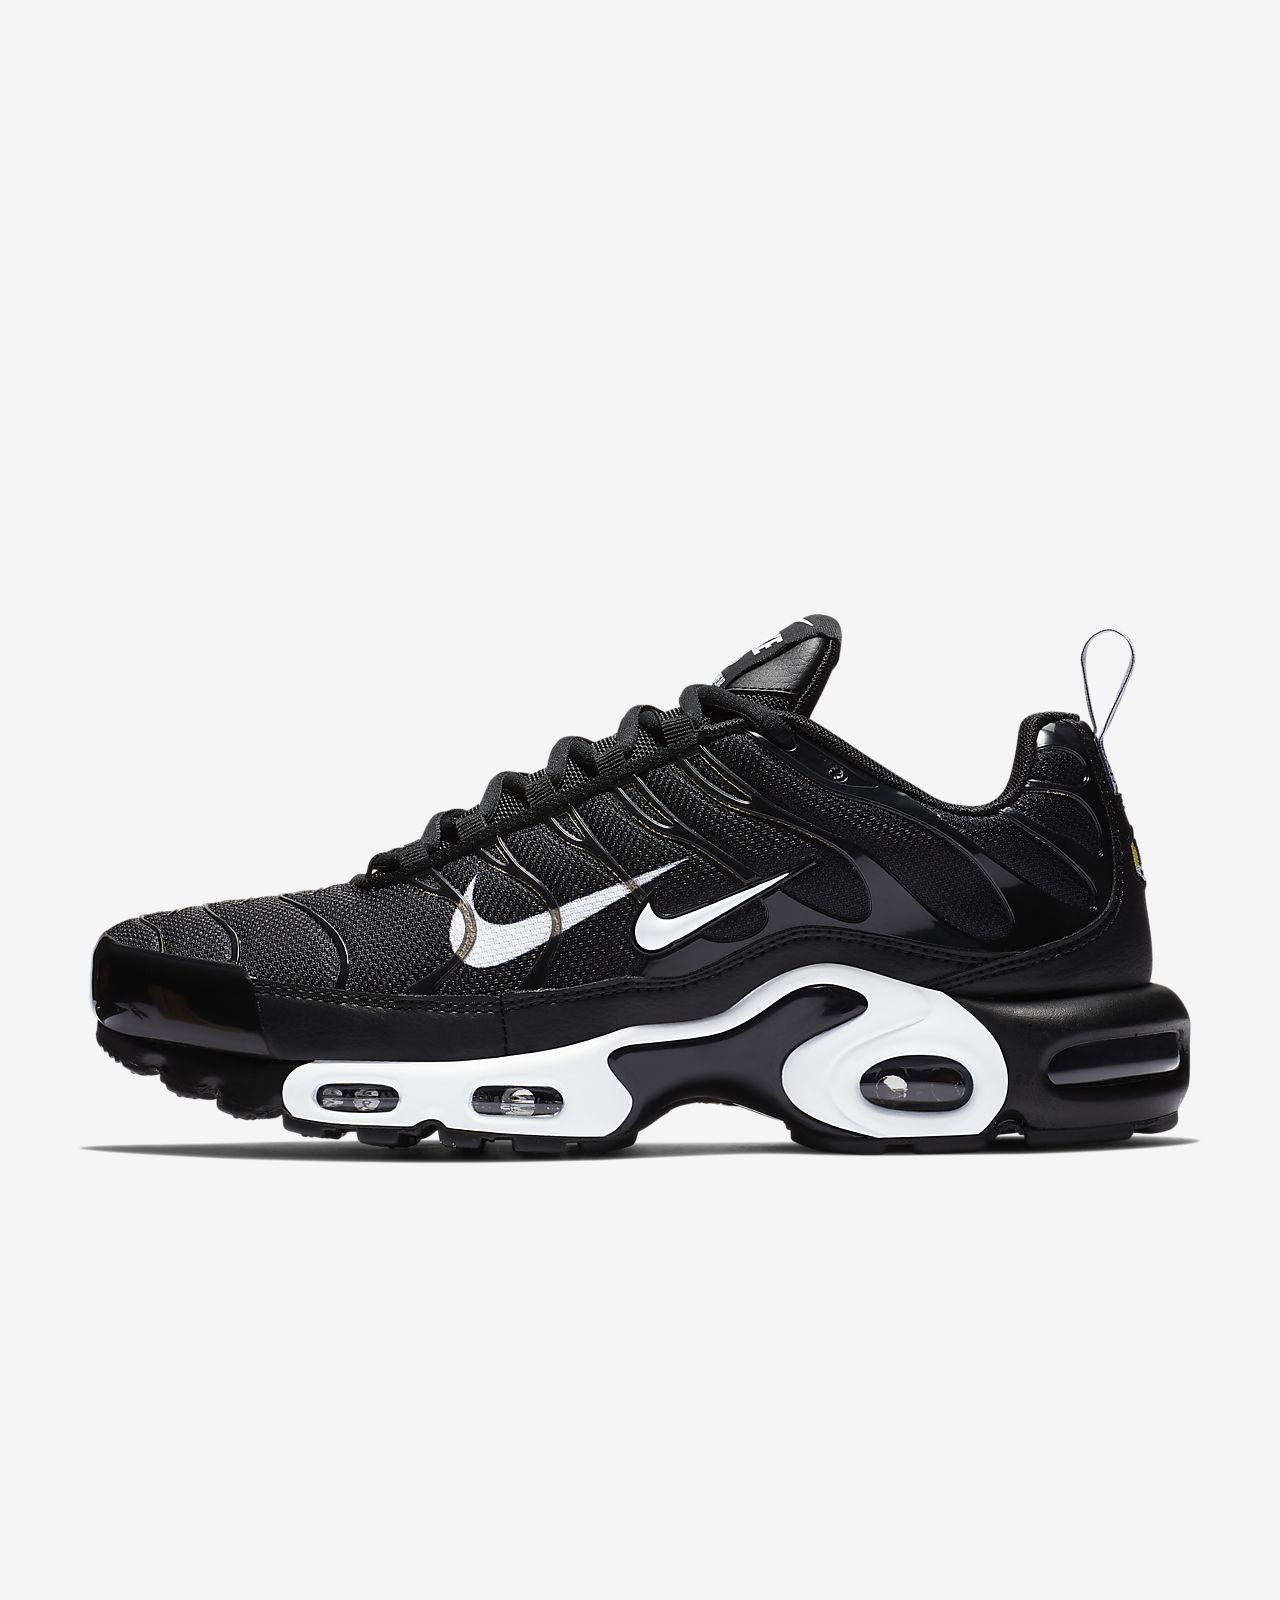 new arrival 0ff03 79a9d Men s Shoe. Nike Air Max Plus Premium